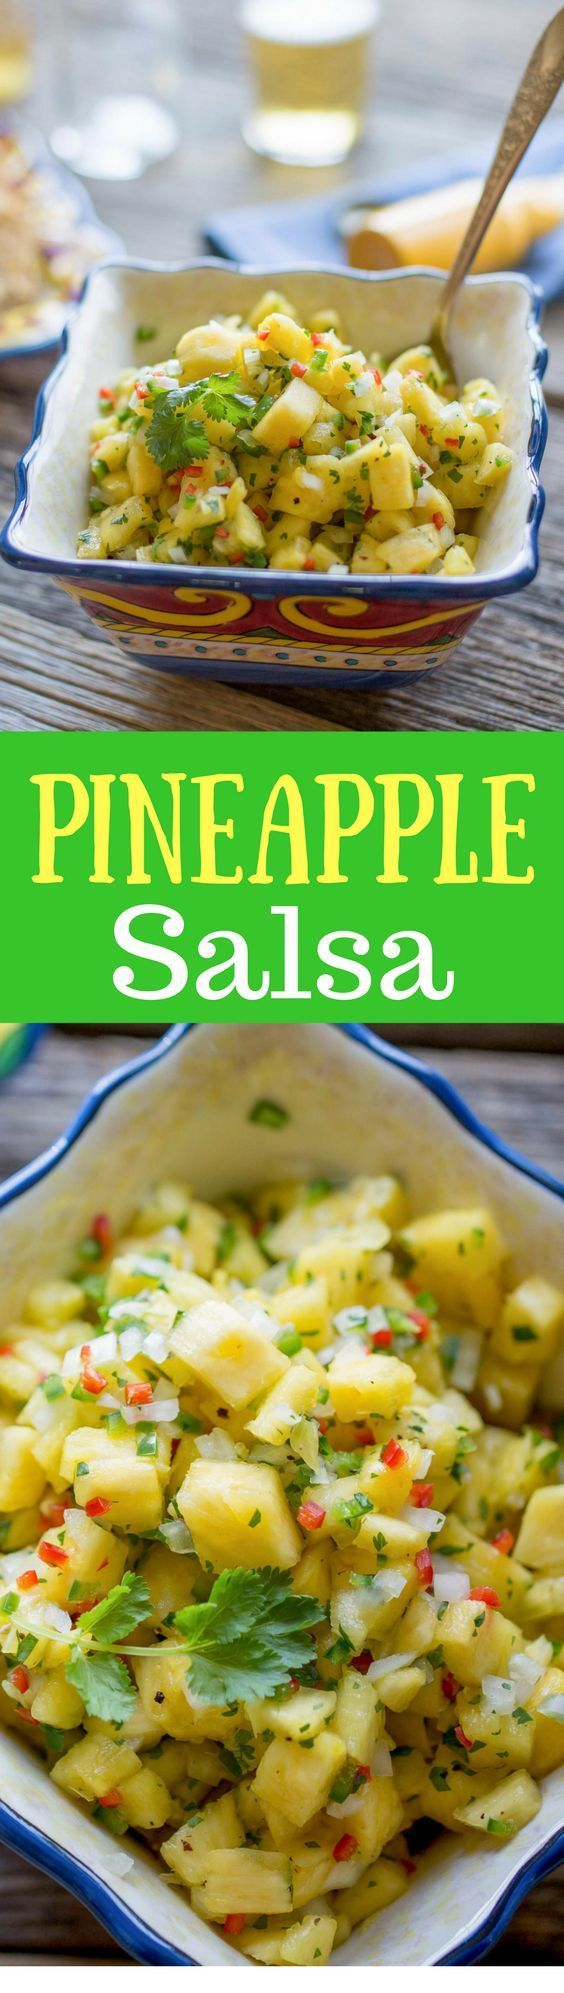 Easy & Fresh Pineapple Salsa - A wonderfully easy salsa that is great on tacos, grilled chicken, burritos or with a bag of chips.  www.savingdessert...